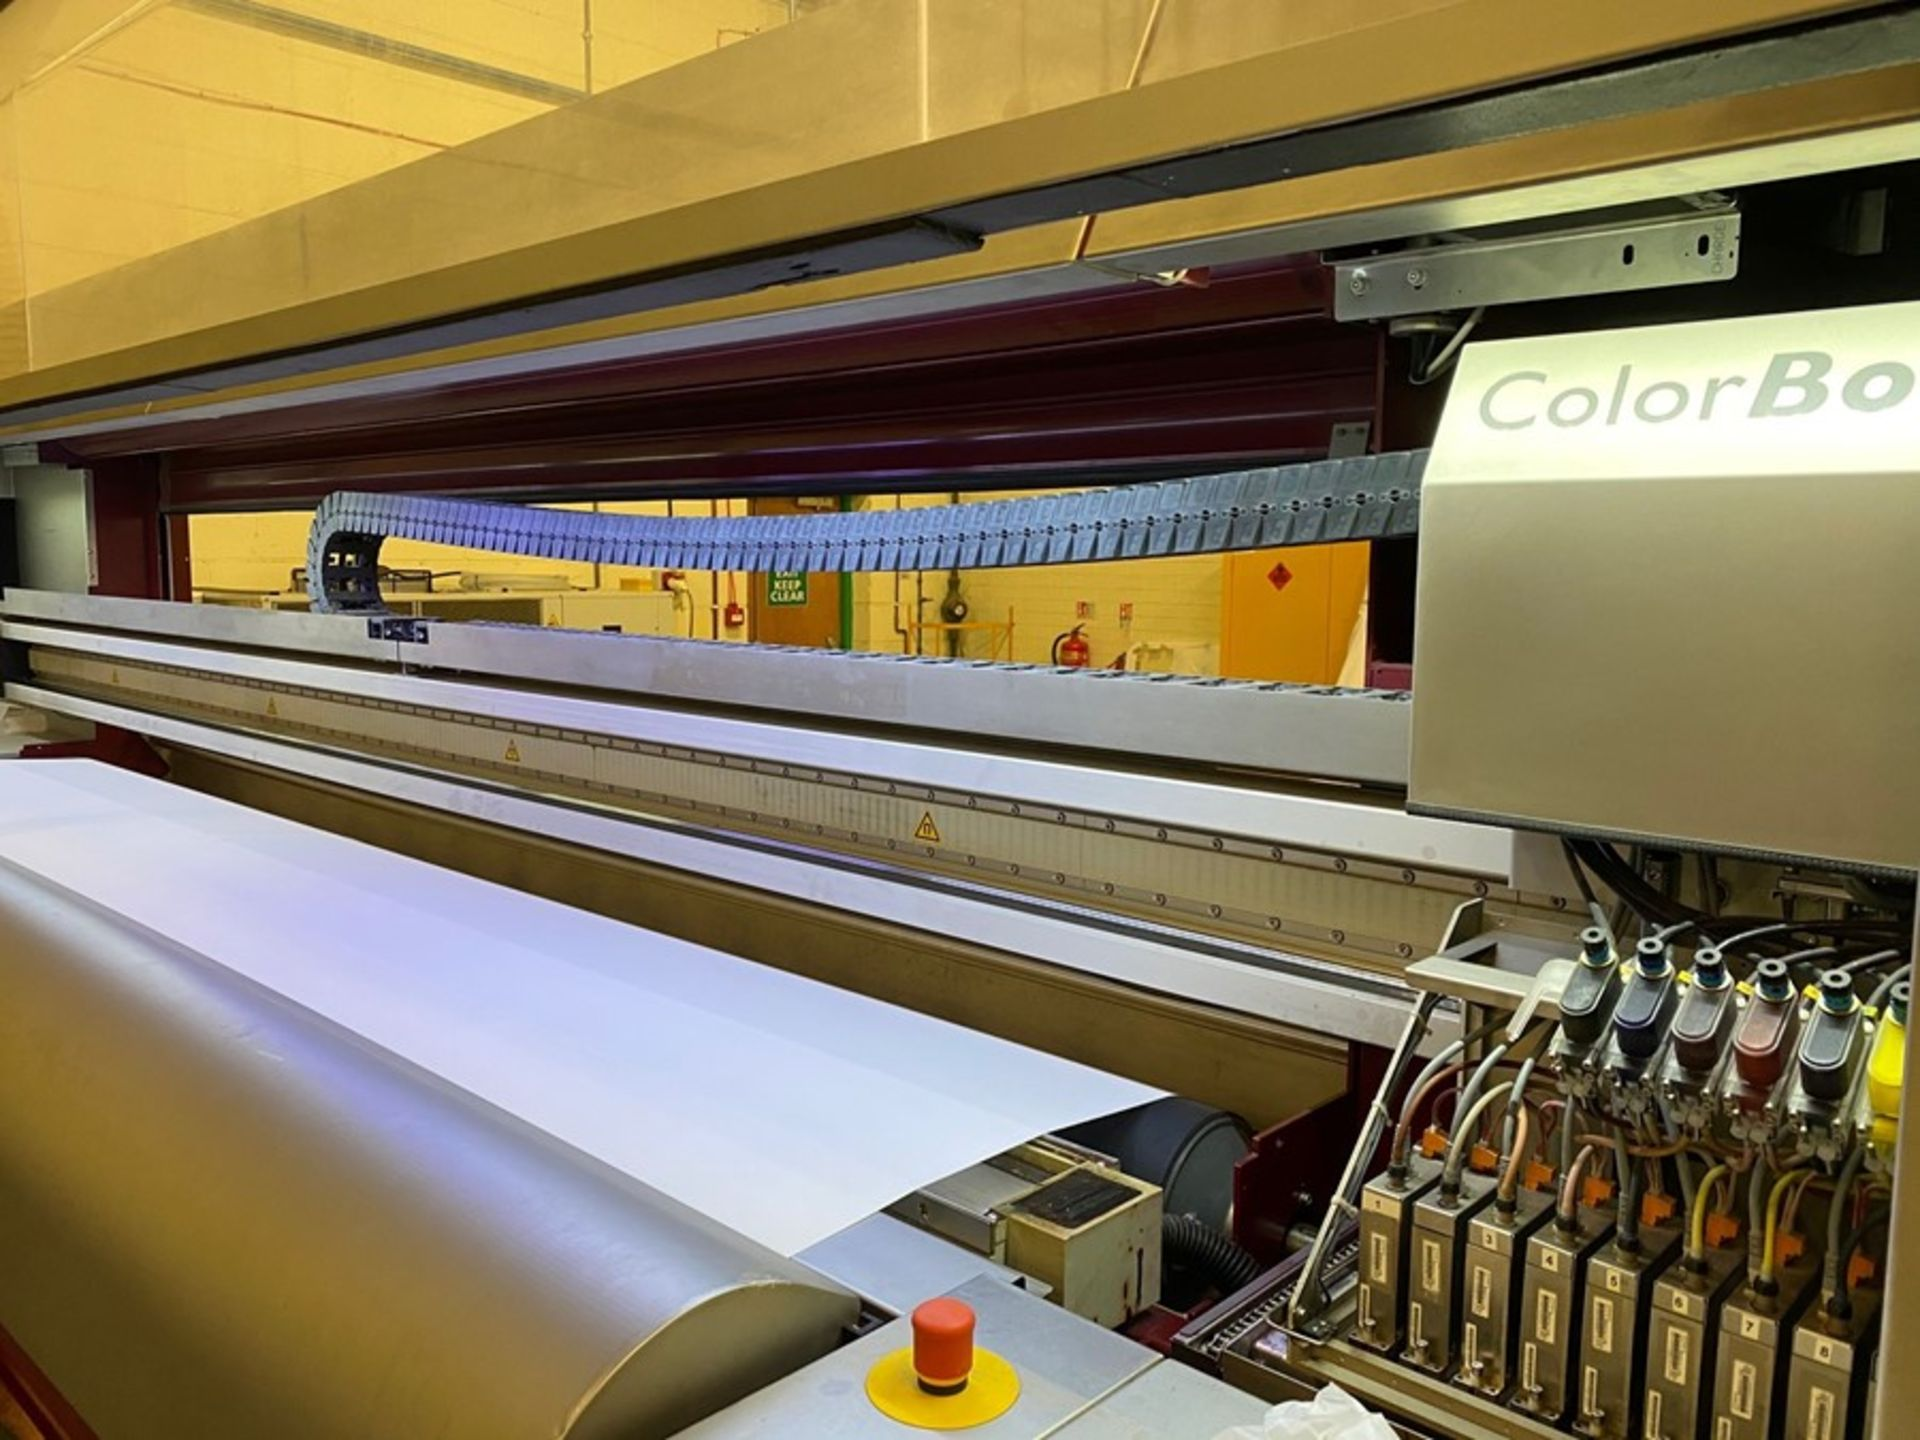 Hollanders Color Booster XL, Type B digital textile printer (2013) - Image 16 of 20